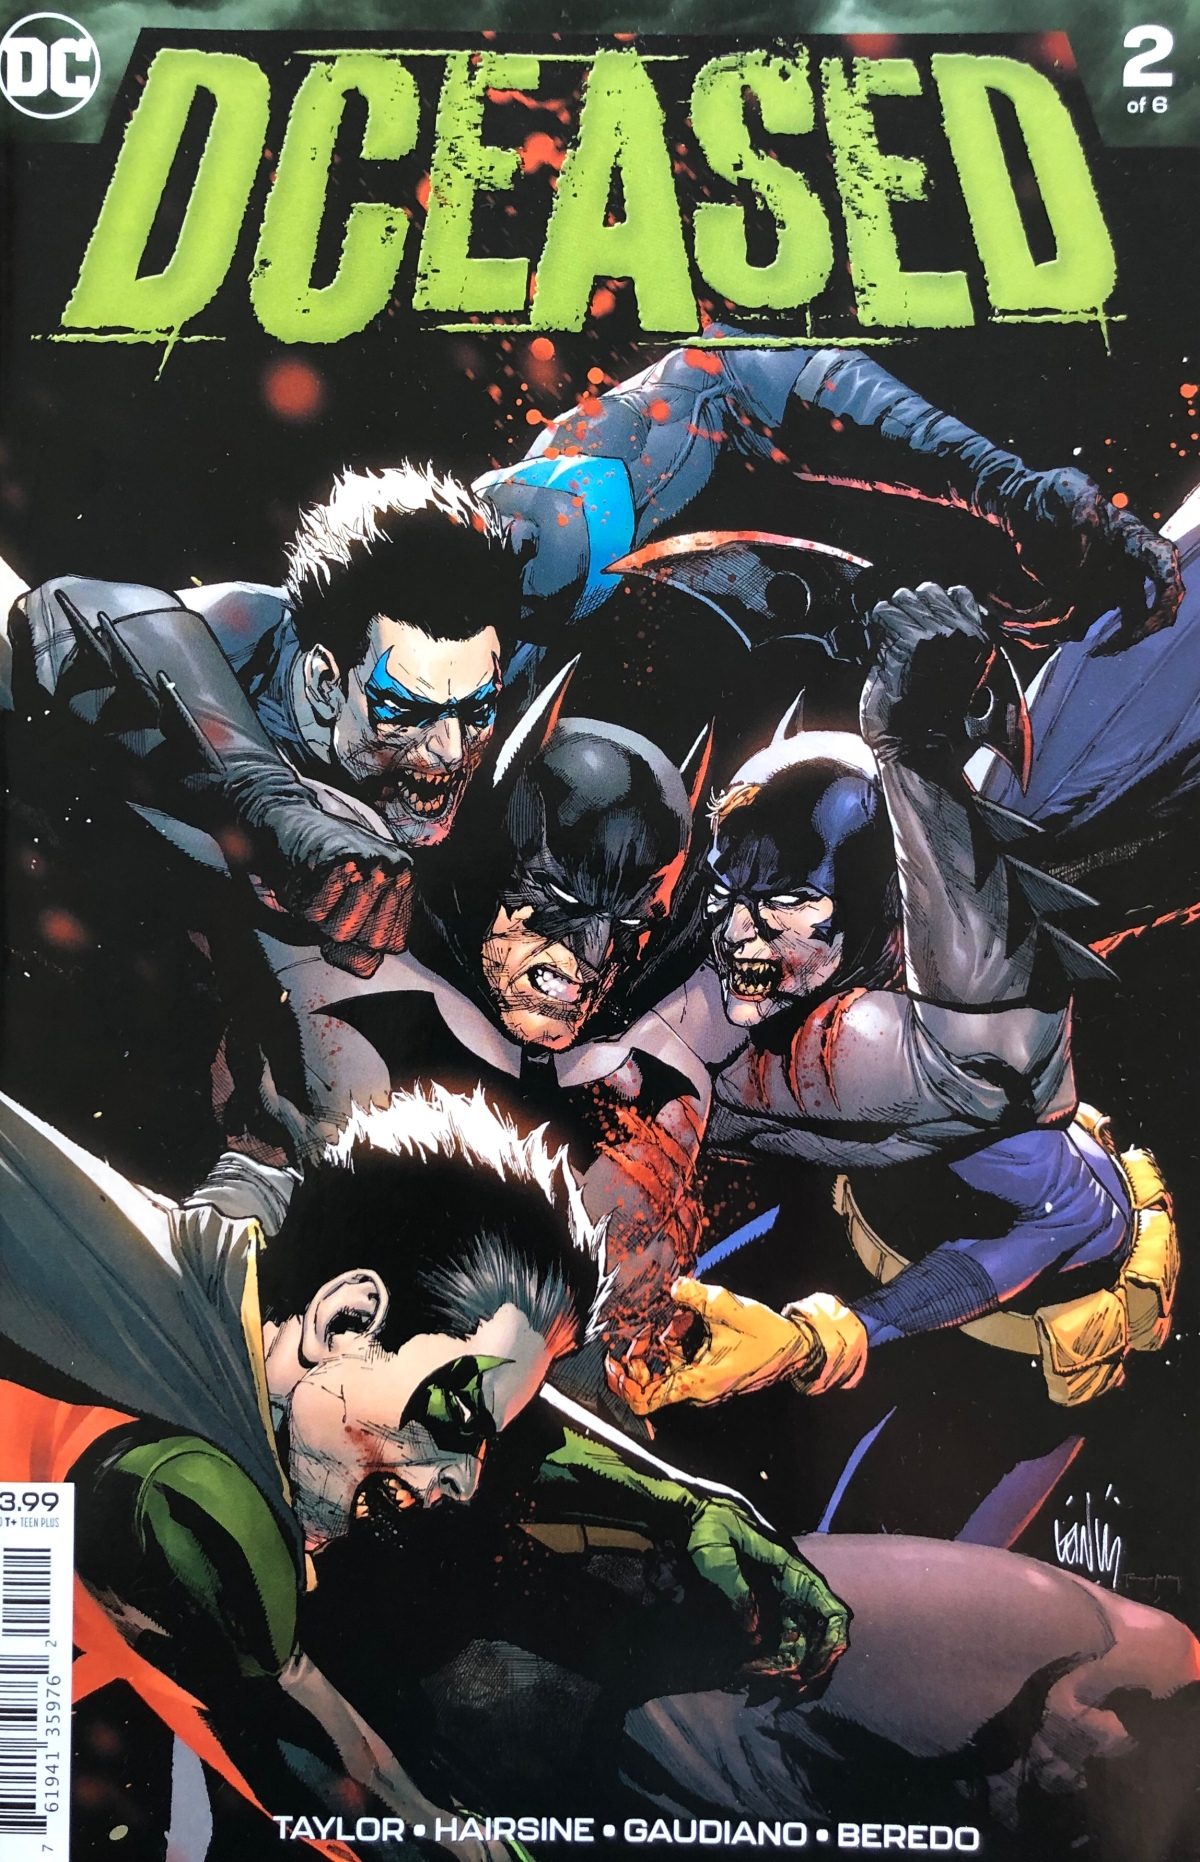 DCEASED #2 |English Review#19